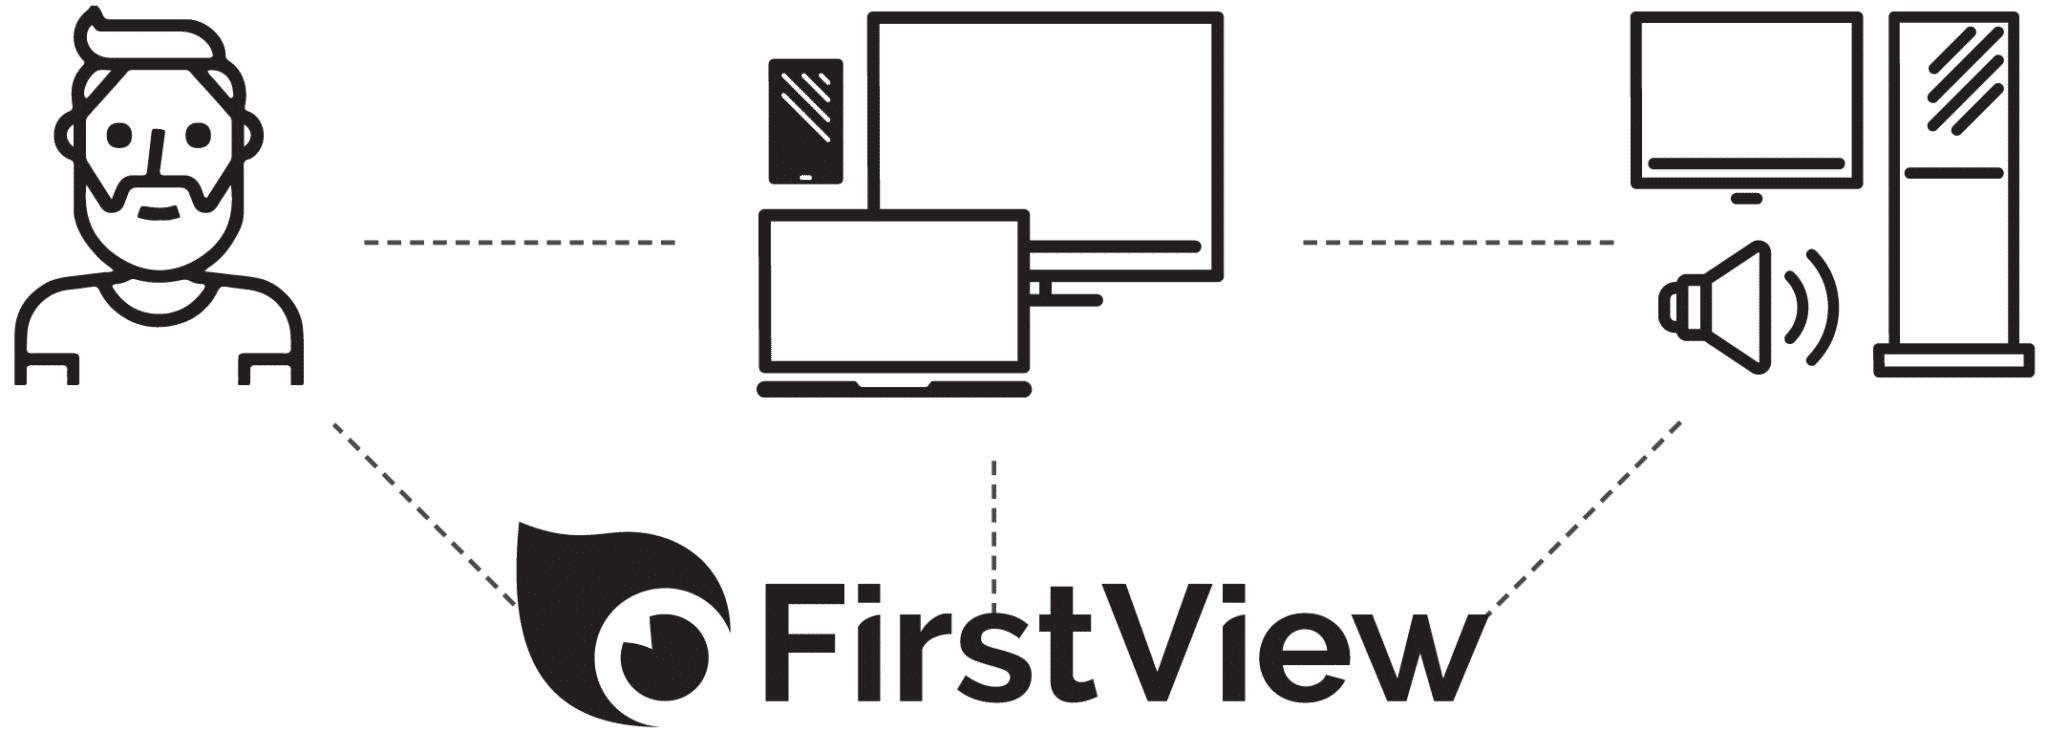 FirstView Digital Signage on kokonaispalvelu